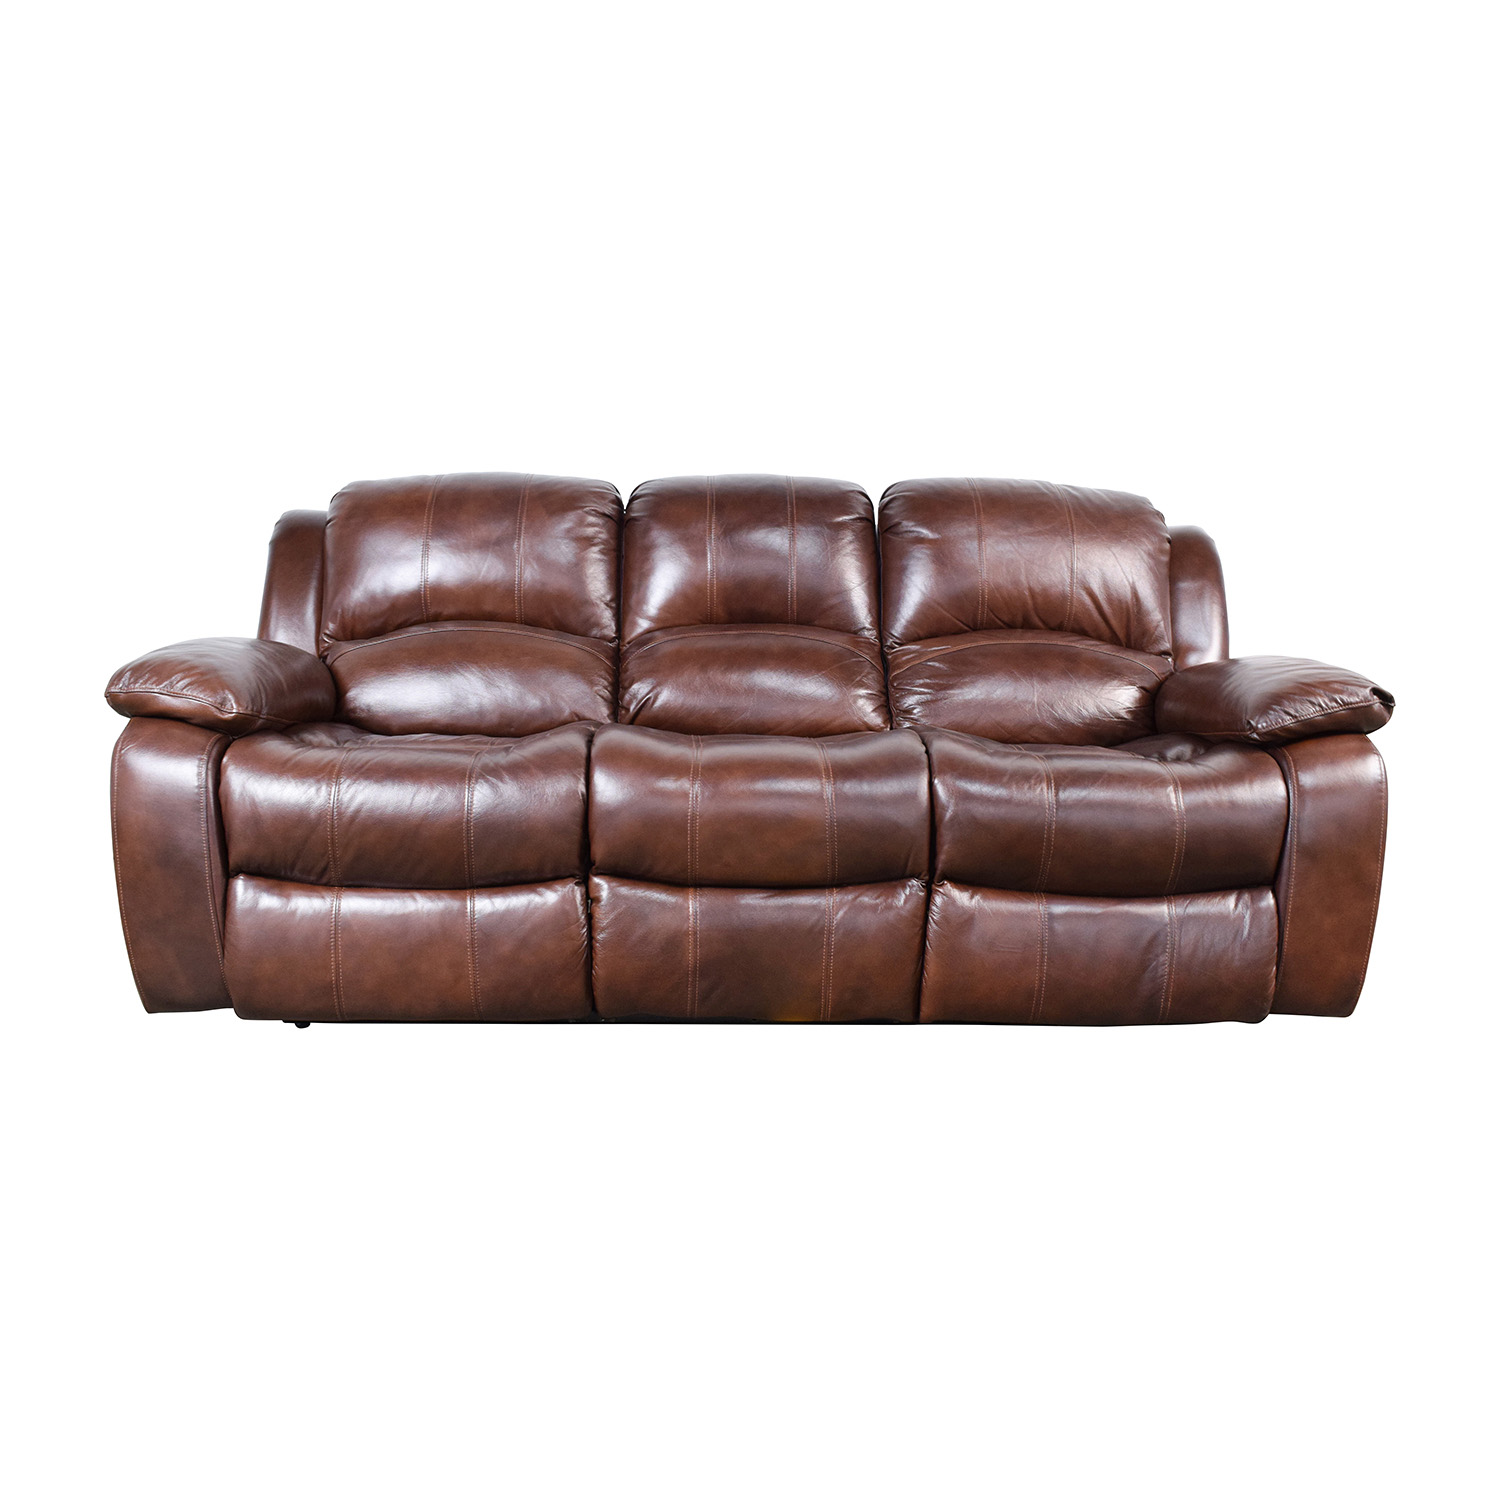 Raymour And Flanigan Leather Sleeper Sofa: Raymour & Flanigan Raymour & Flanigan Bryant II